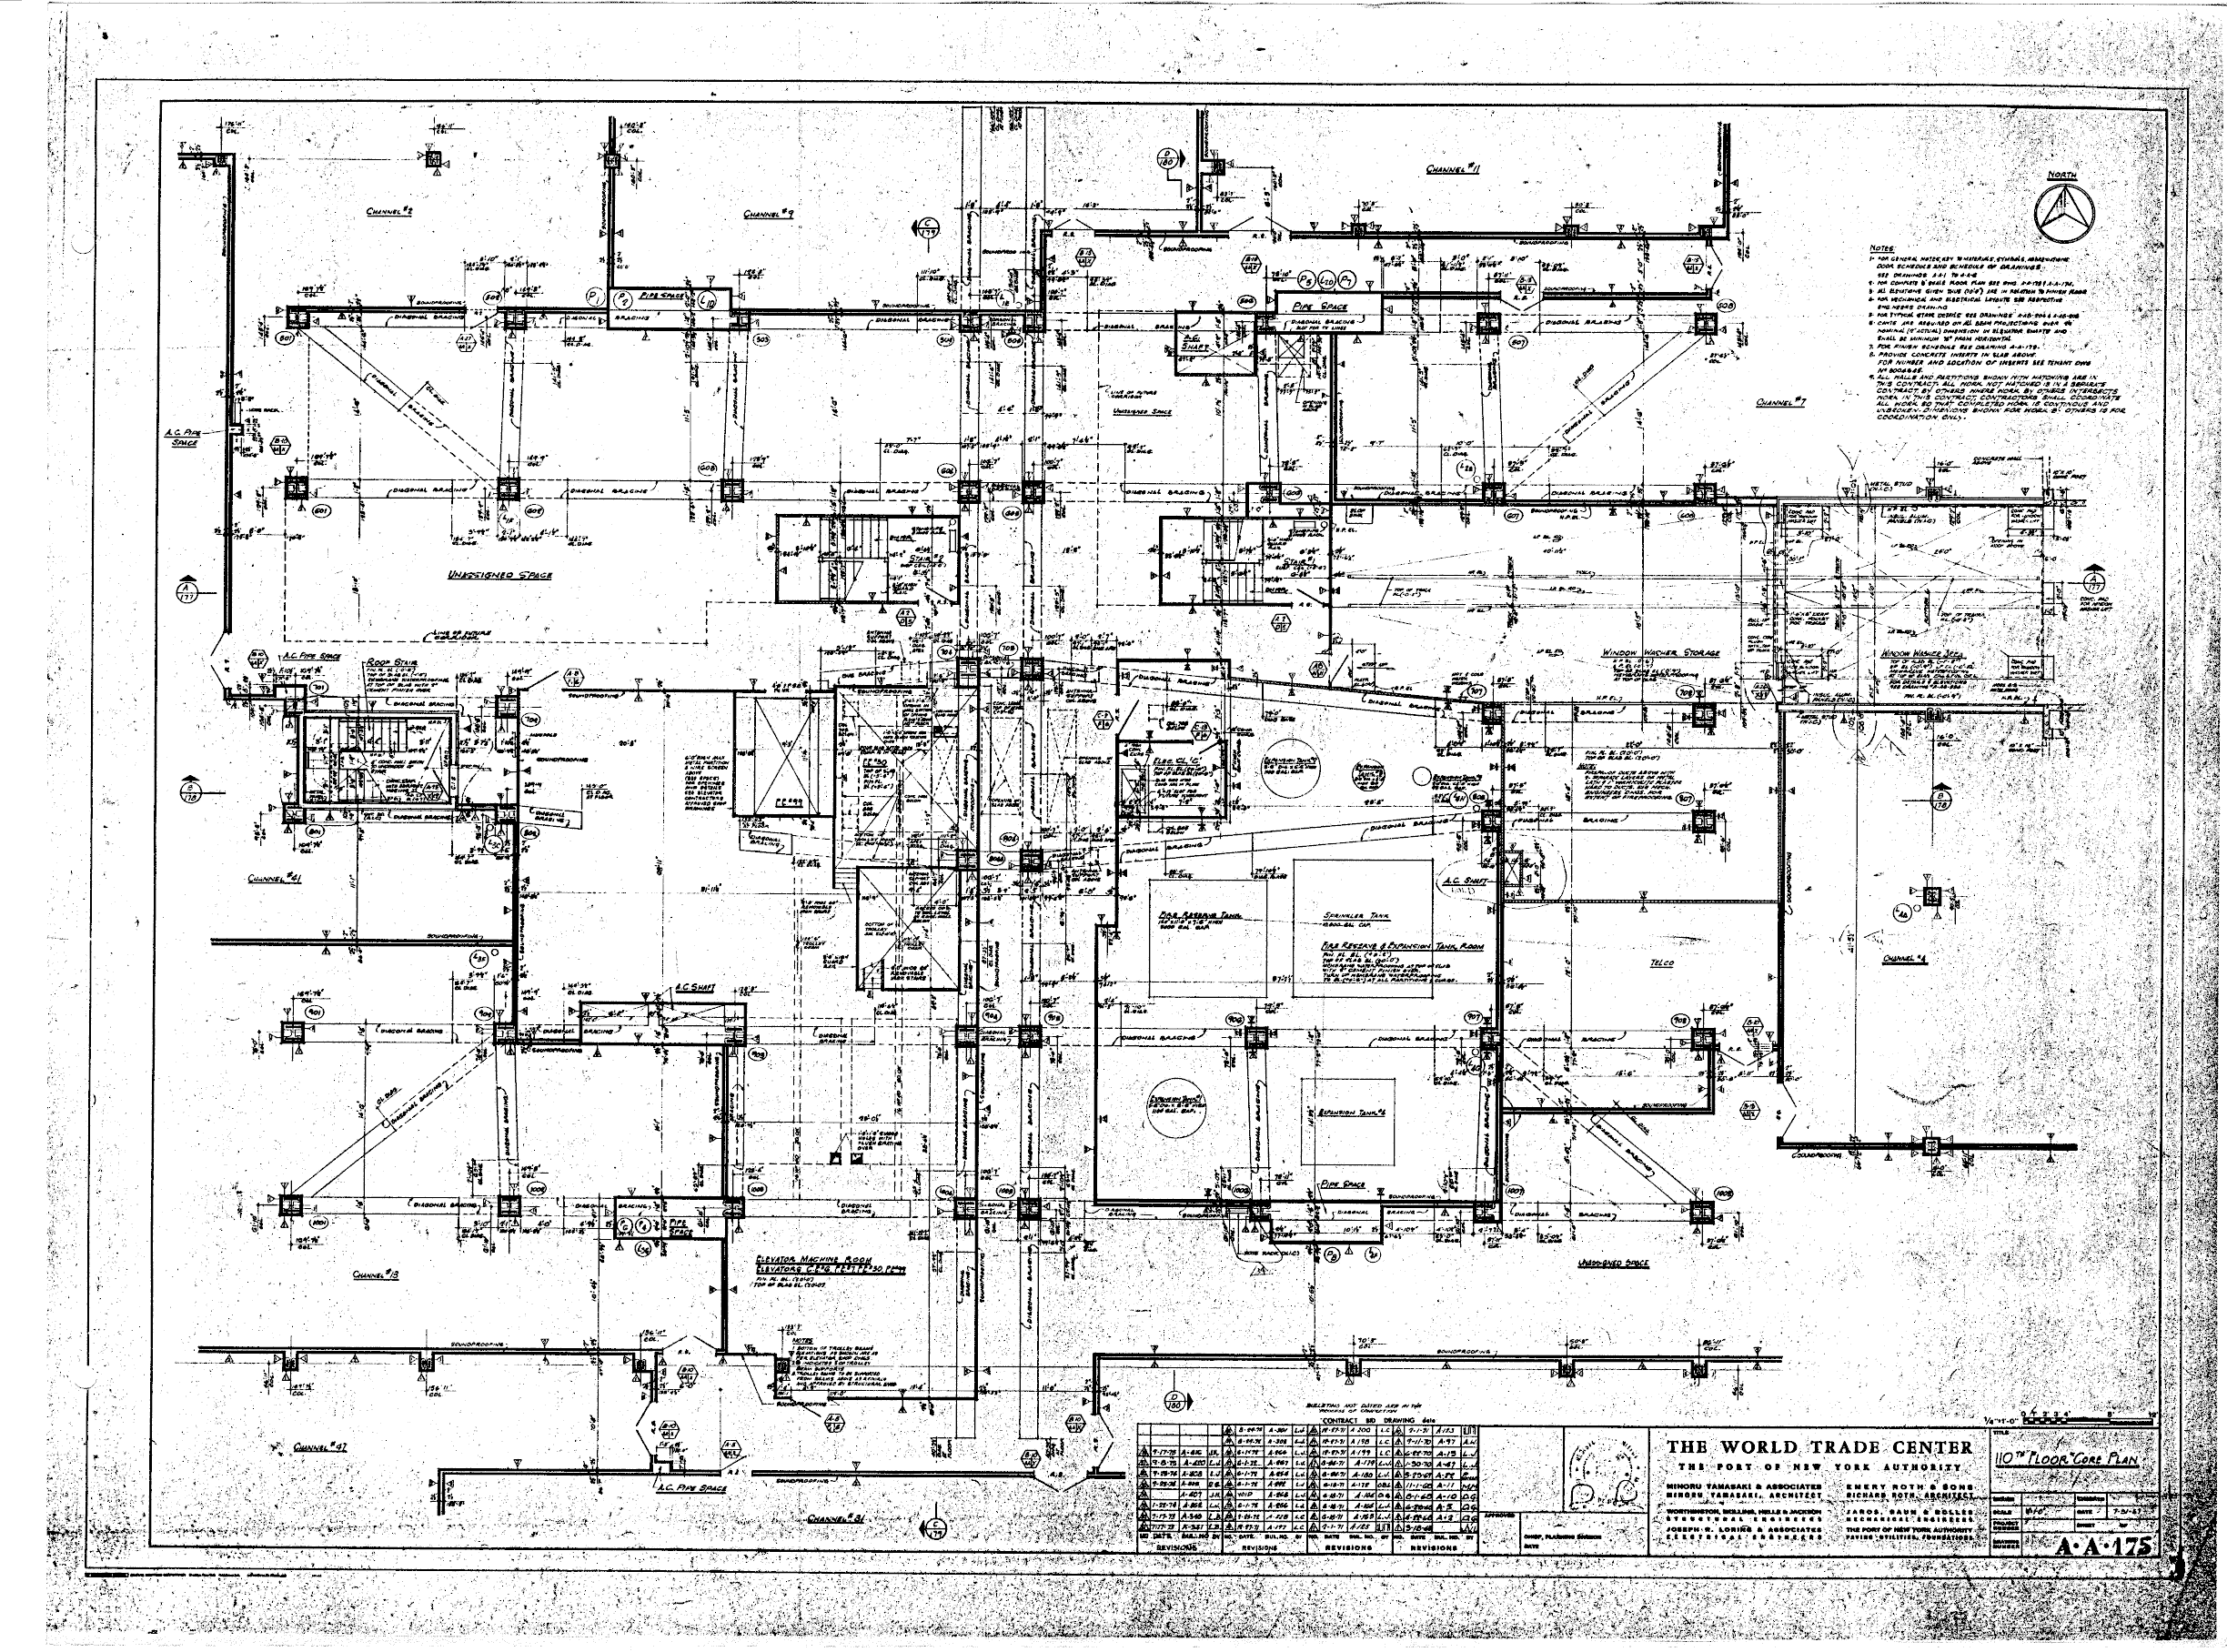 North tower blueprints table of world trade center tower a architectural drawings malvernweather Image collections